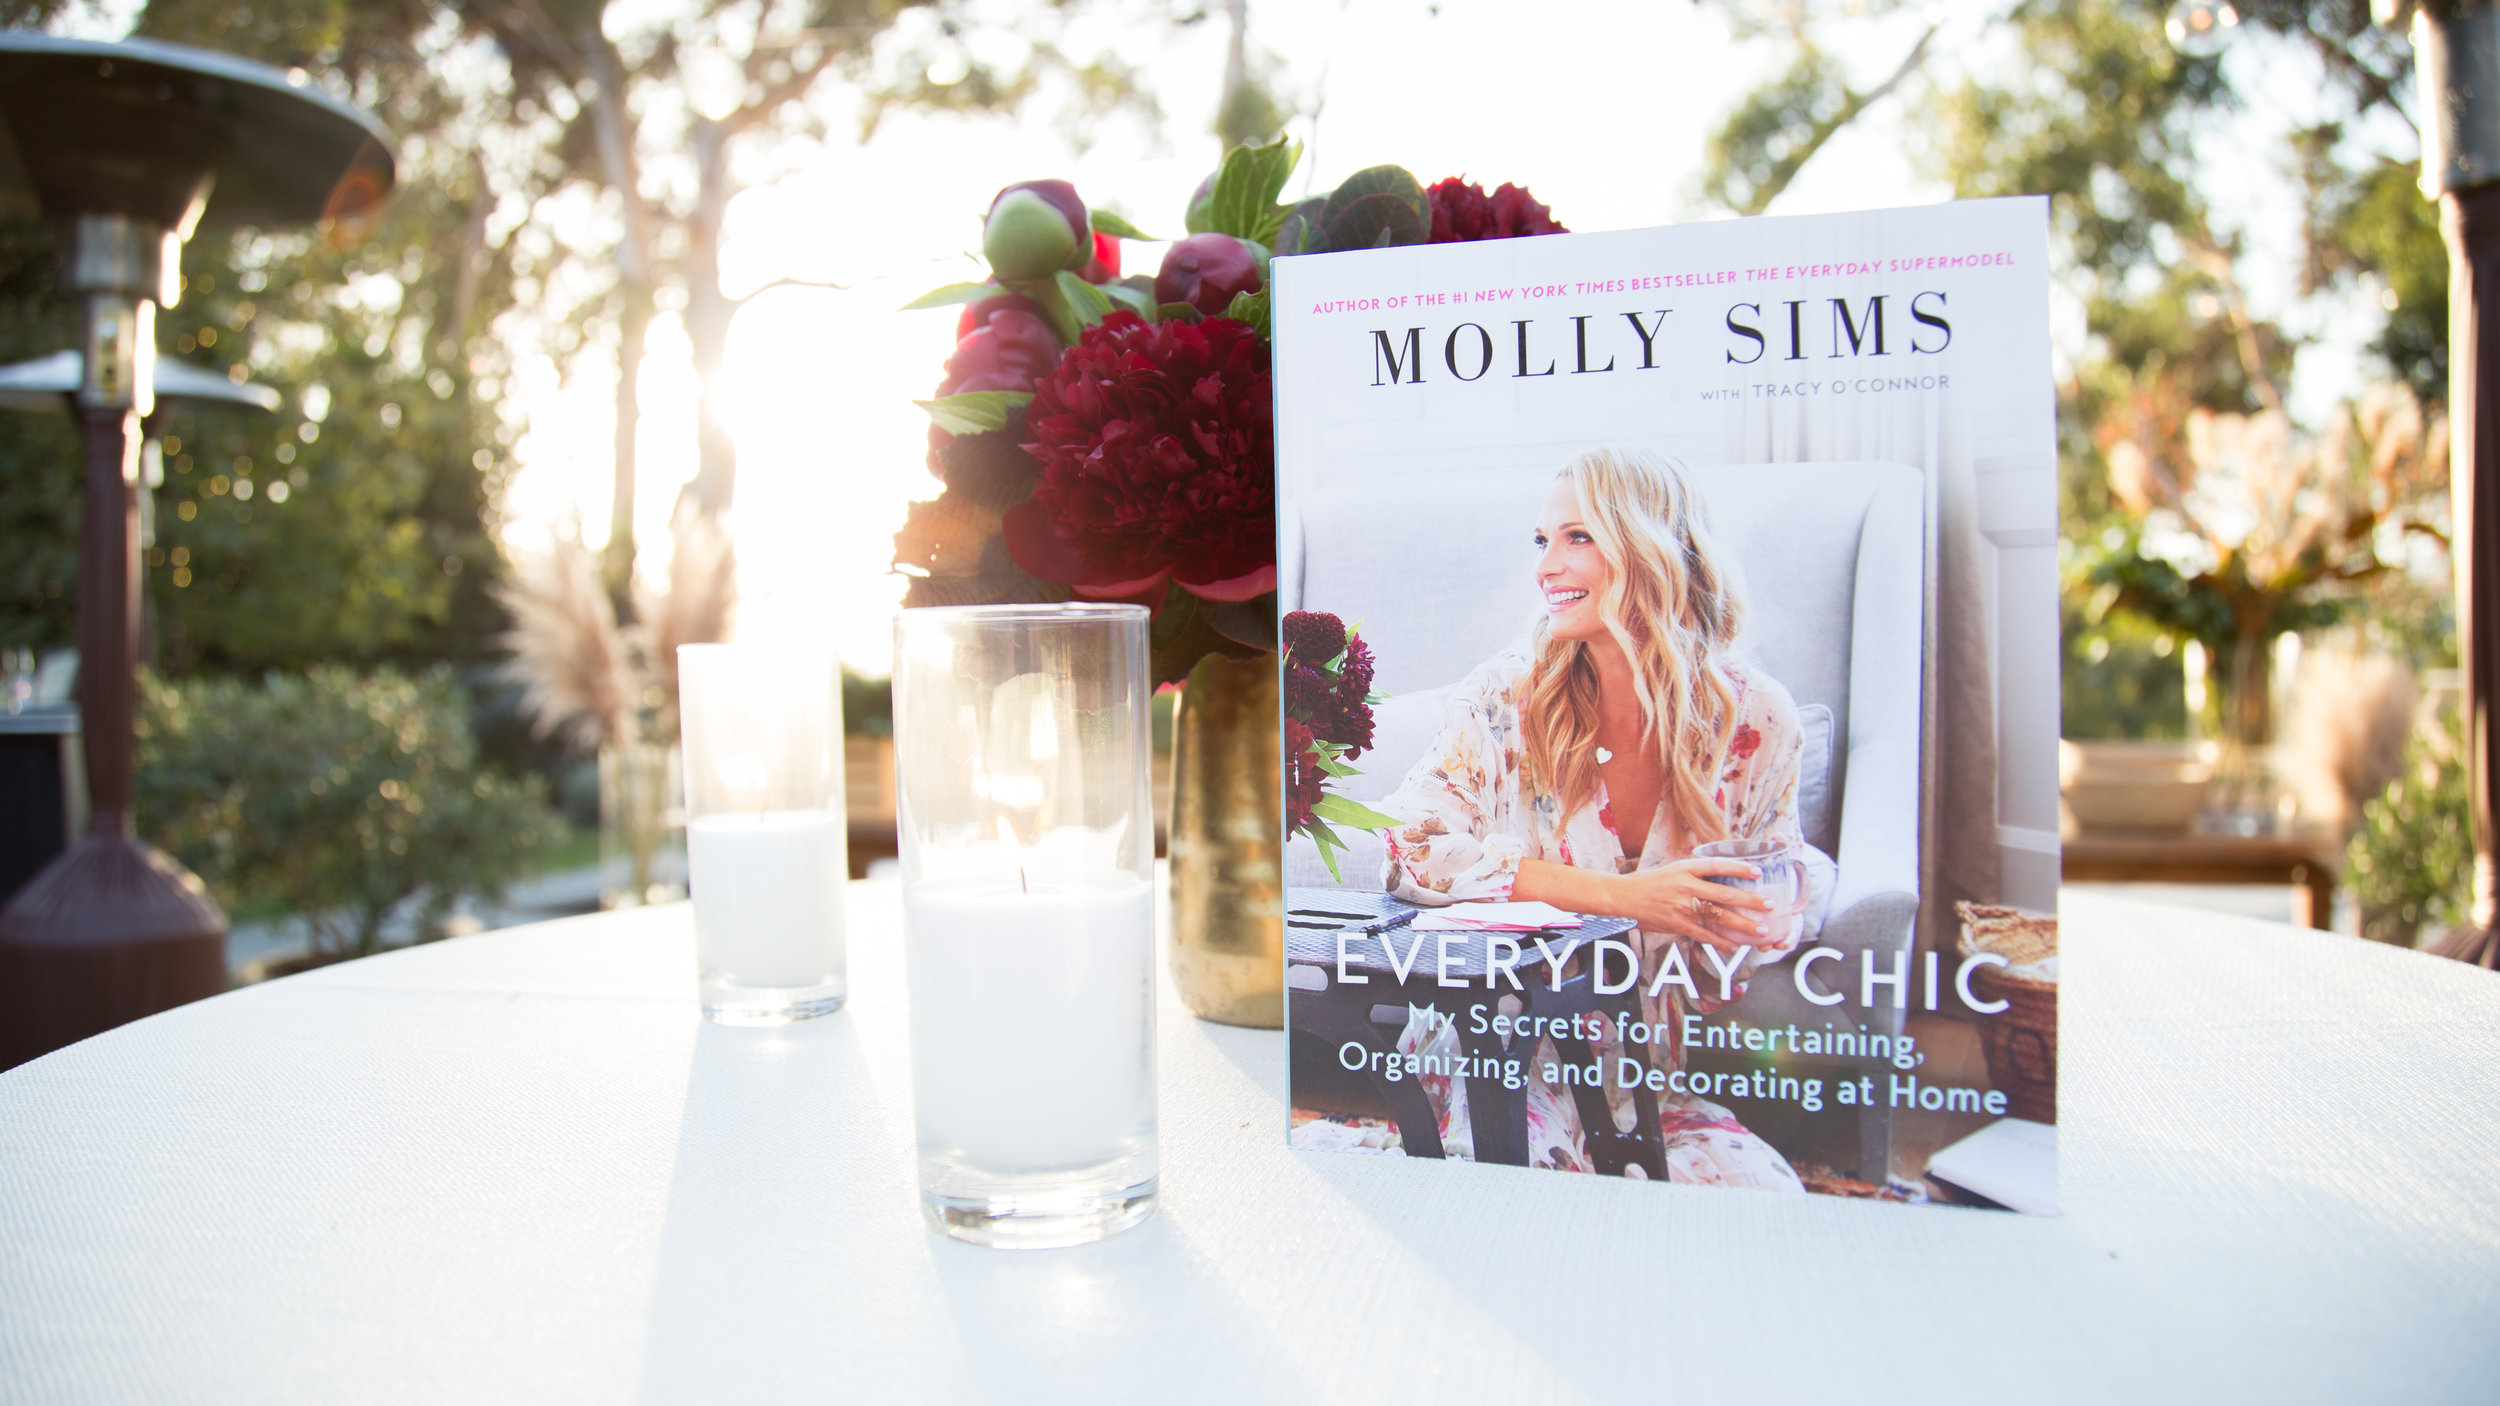 Molly Sims Everyday Chic Book Launch, photography by Erica Hampton